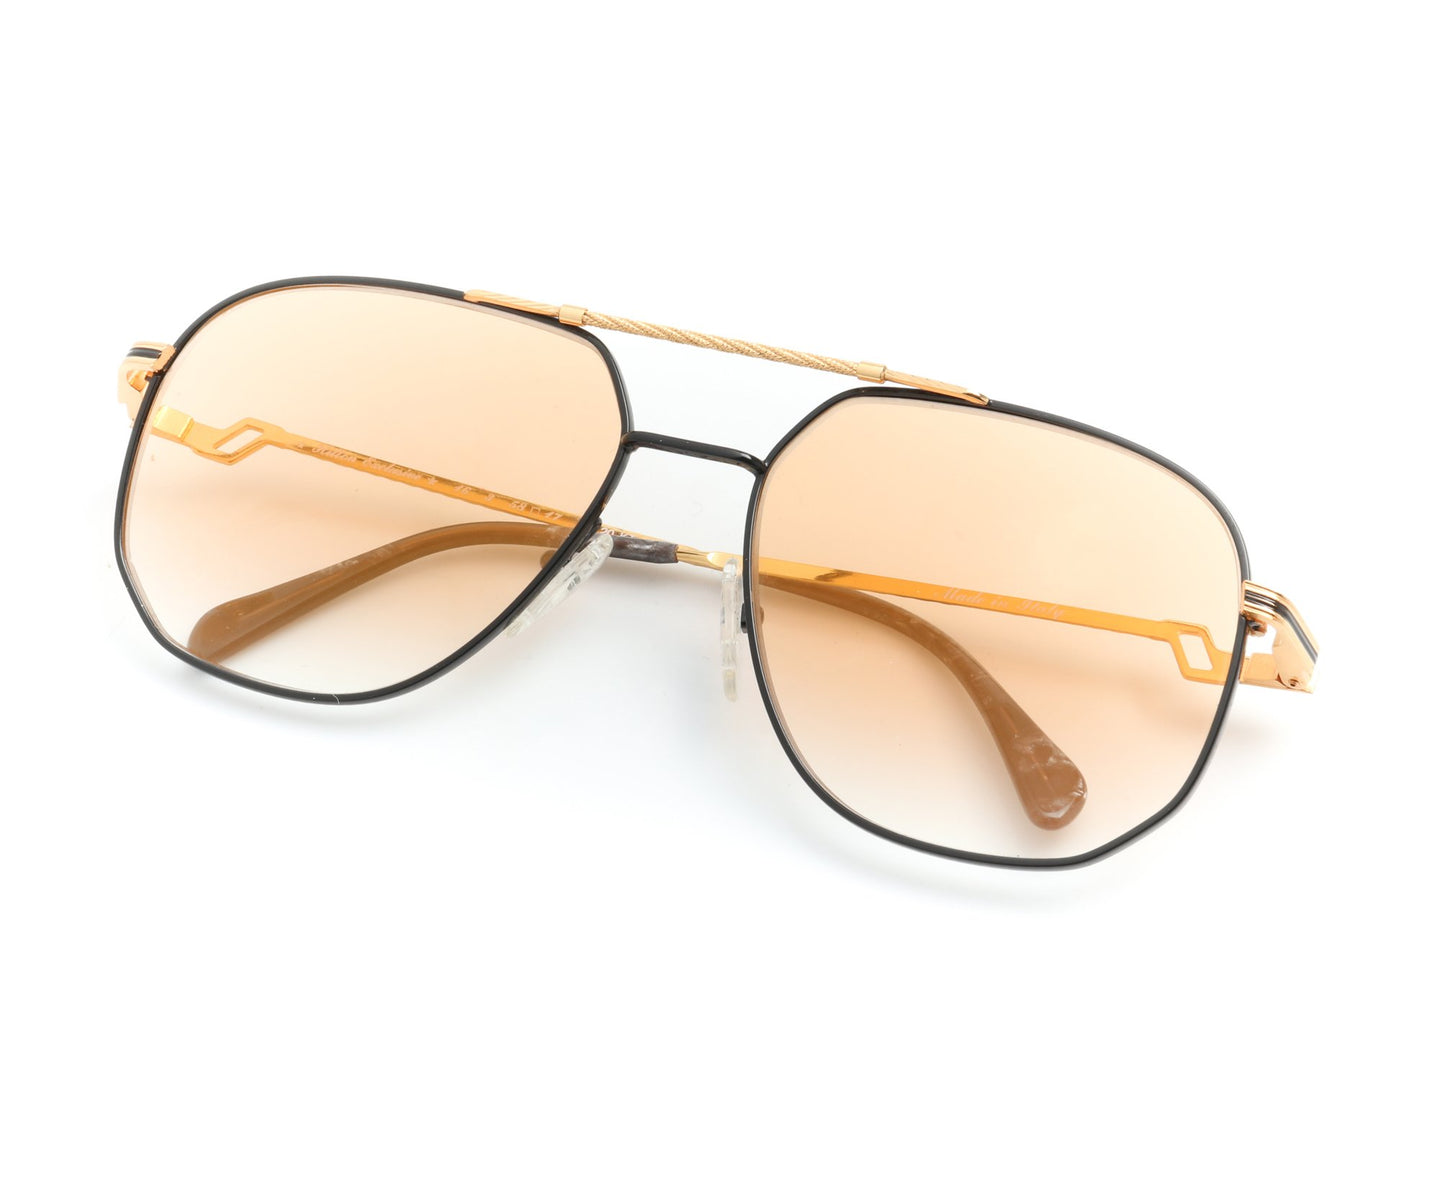 Hilton Exclusive 16 3 20KT Gold Plated (Light Orange), Hilton , glasses frames, eyeglasses online, eyeglass frames, mens glasses, womens glasses, buy glasses online, designer eyeglasses, vintage sunglasses, retro sunglasses, vintage glasses, sunglass, eyeglass, glasses, lens, vintage frames company, vf